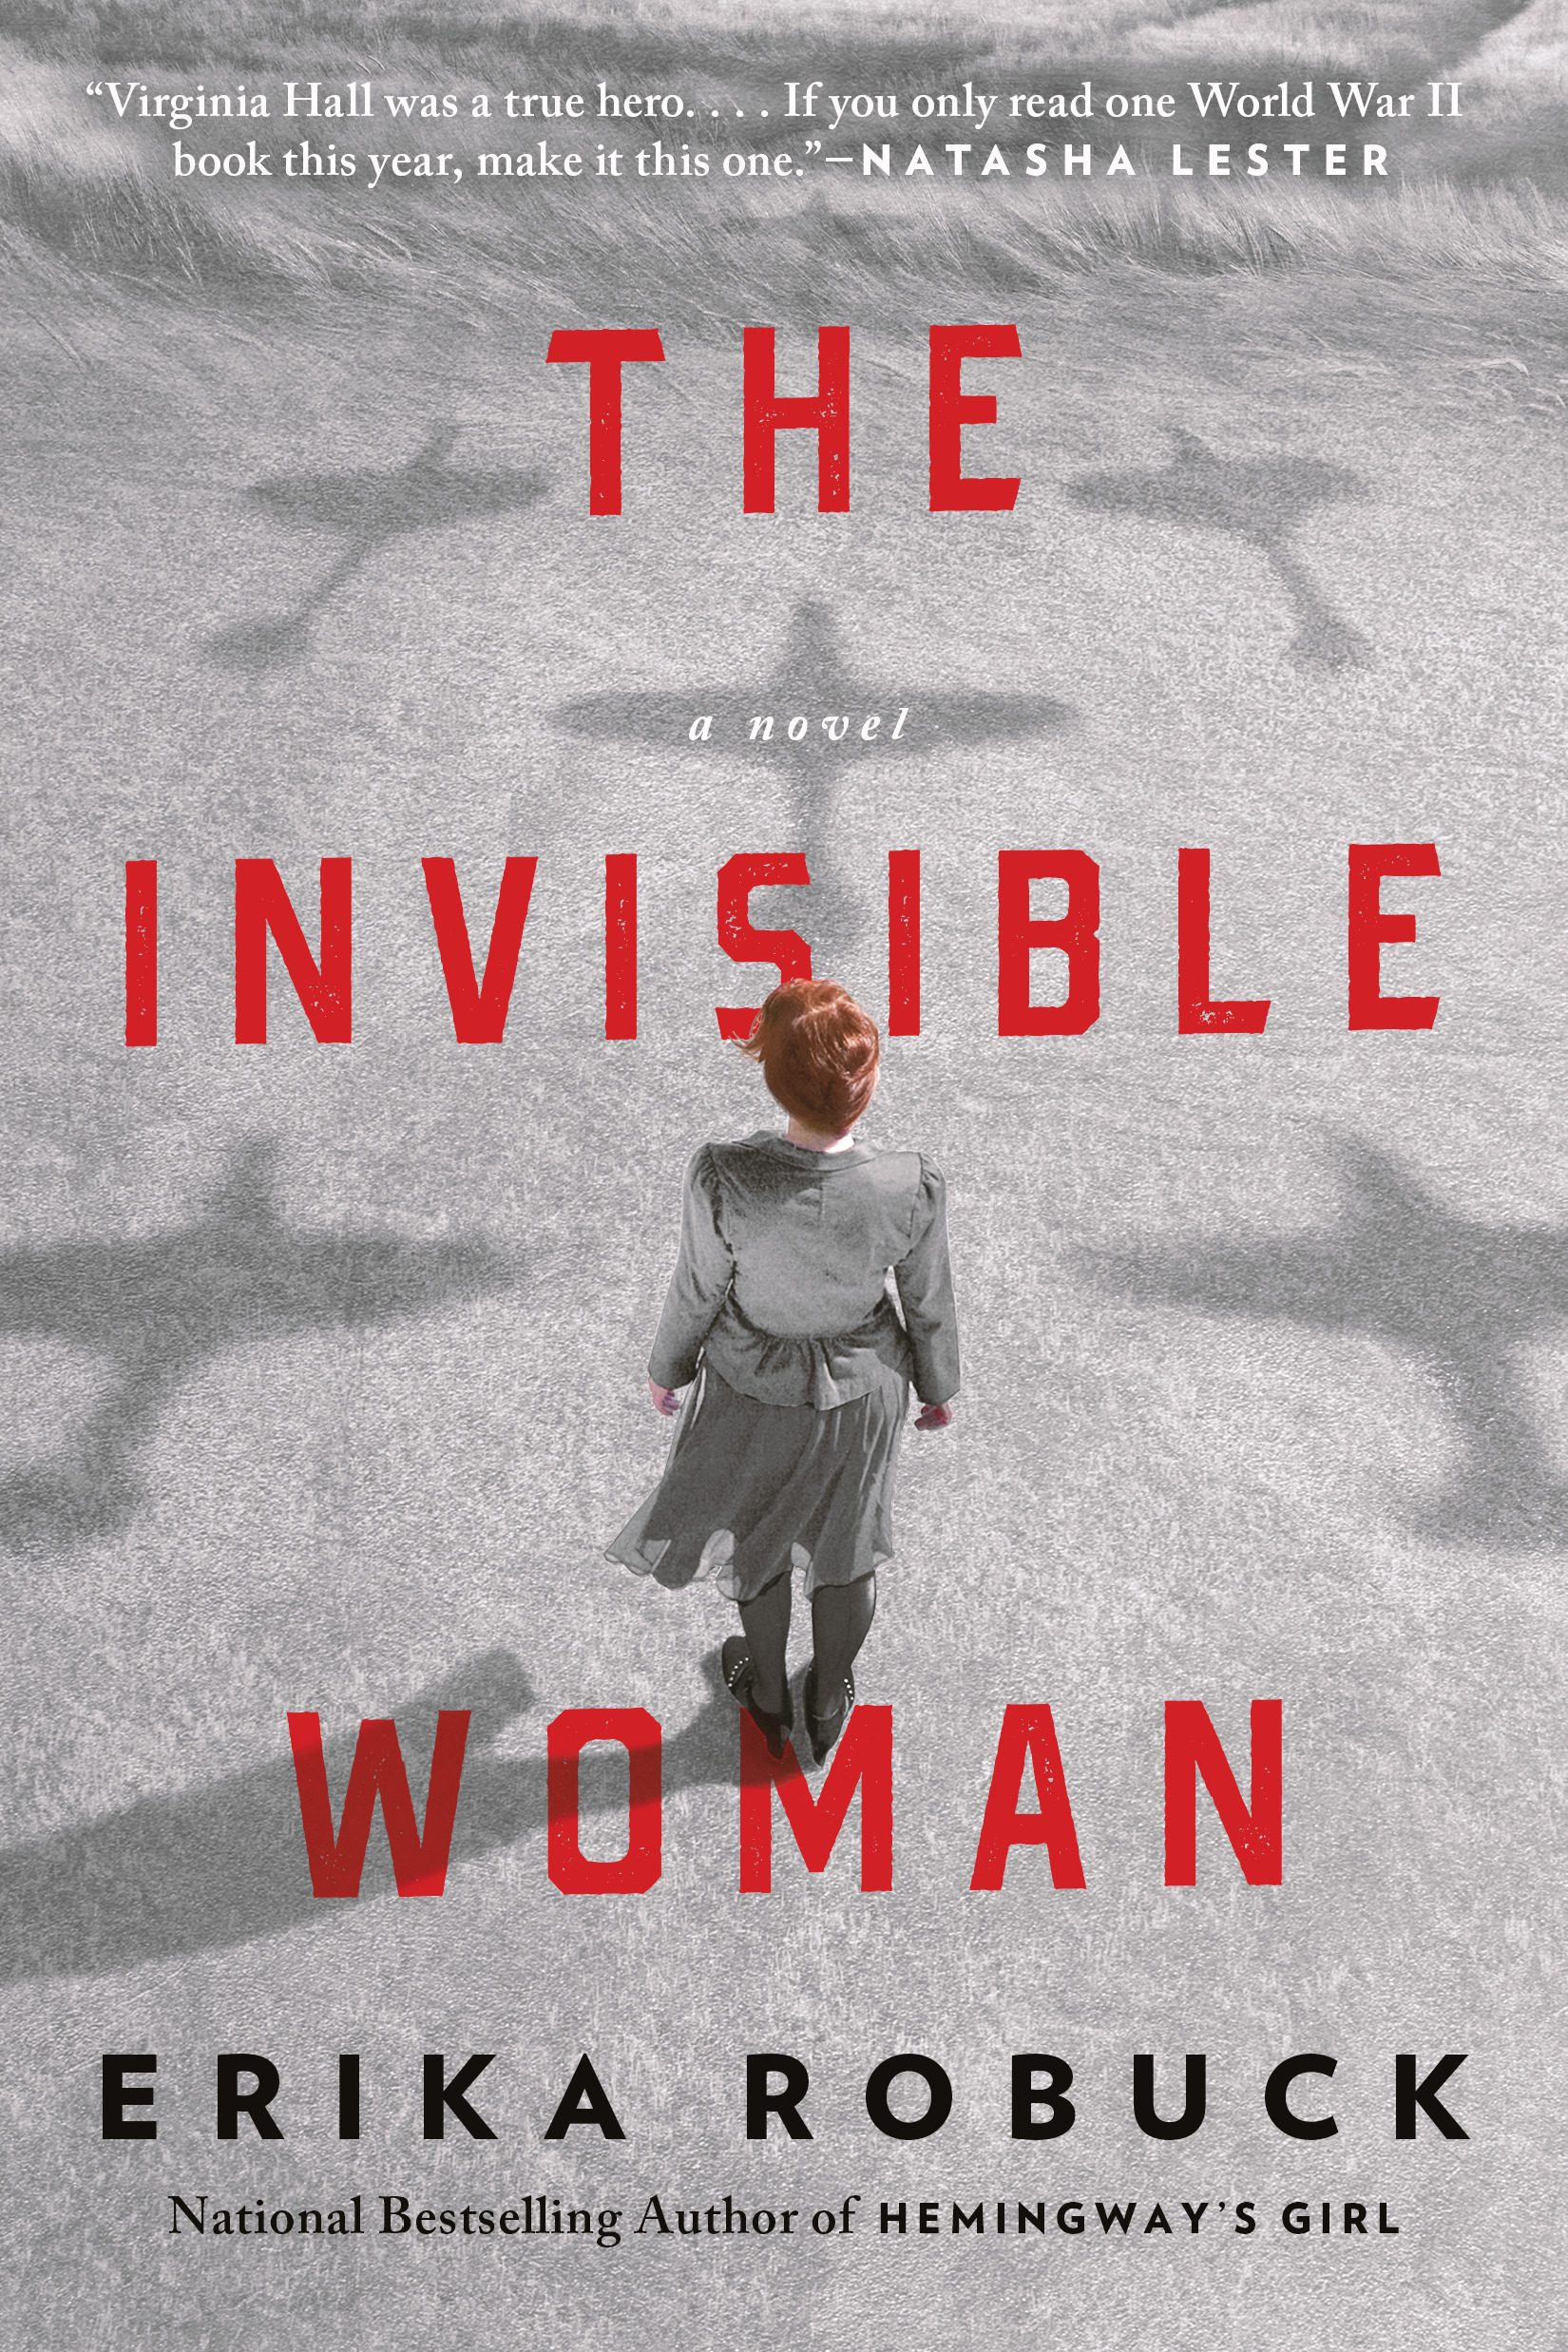 The Invisible Woman By Erika Robuck Release Date? 2021 Historical Fiction Releases